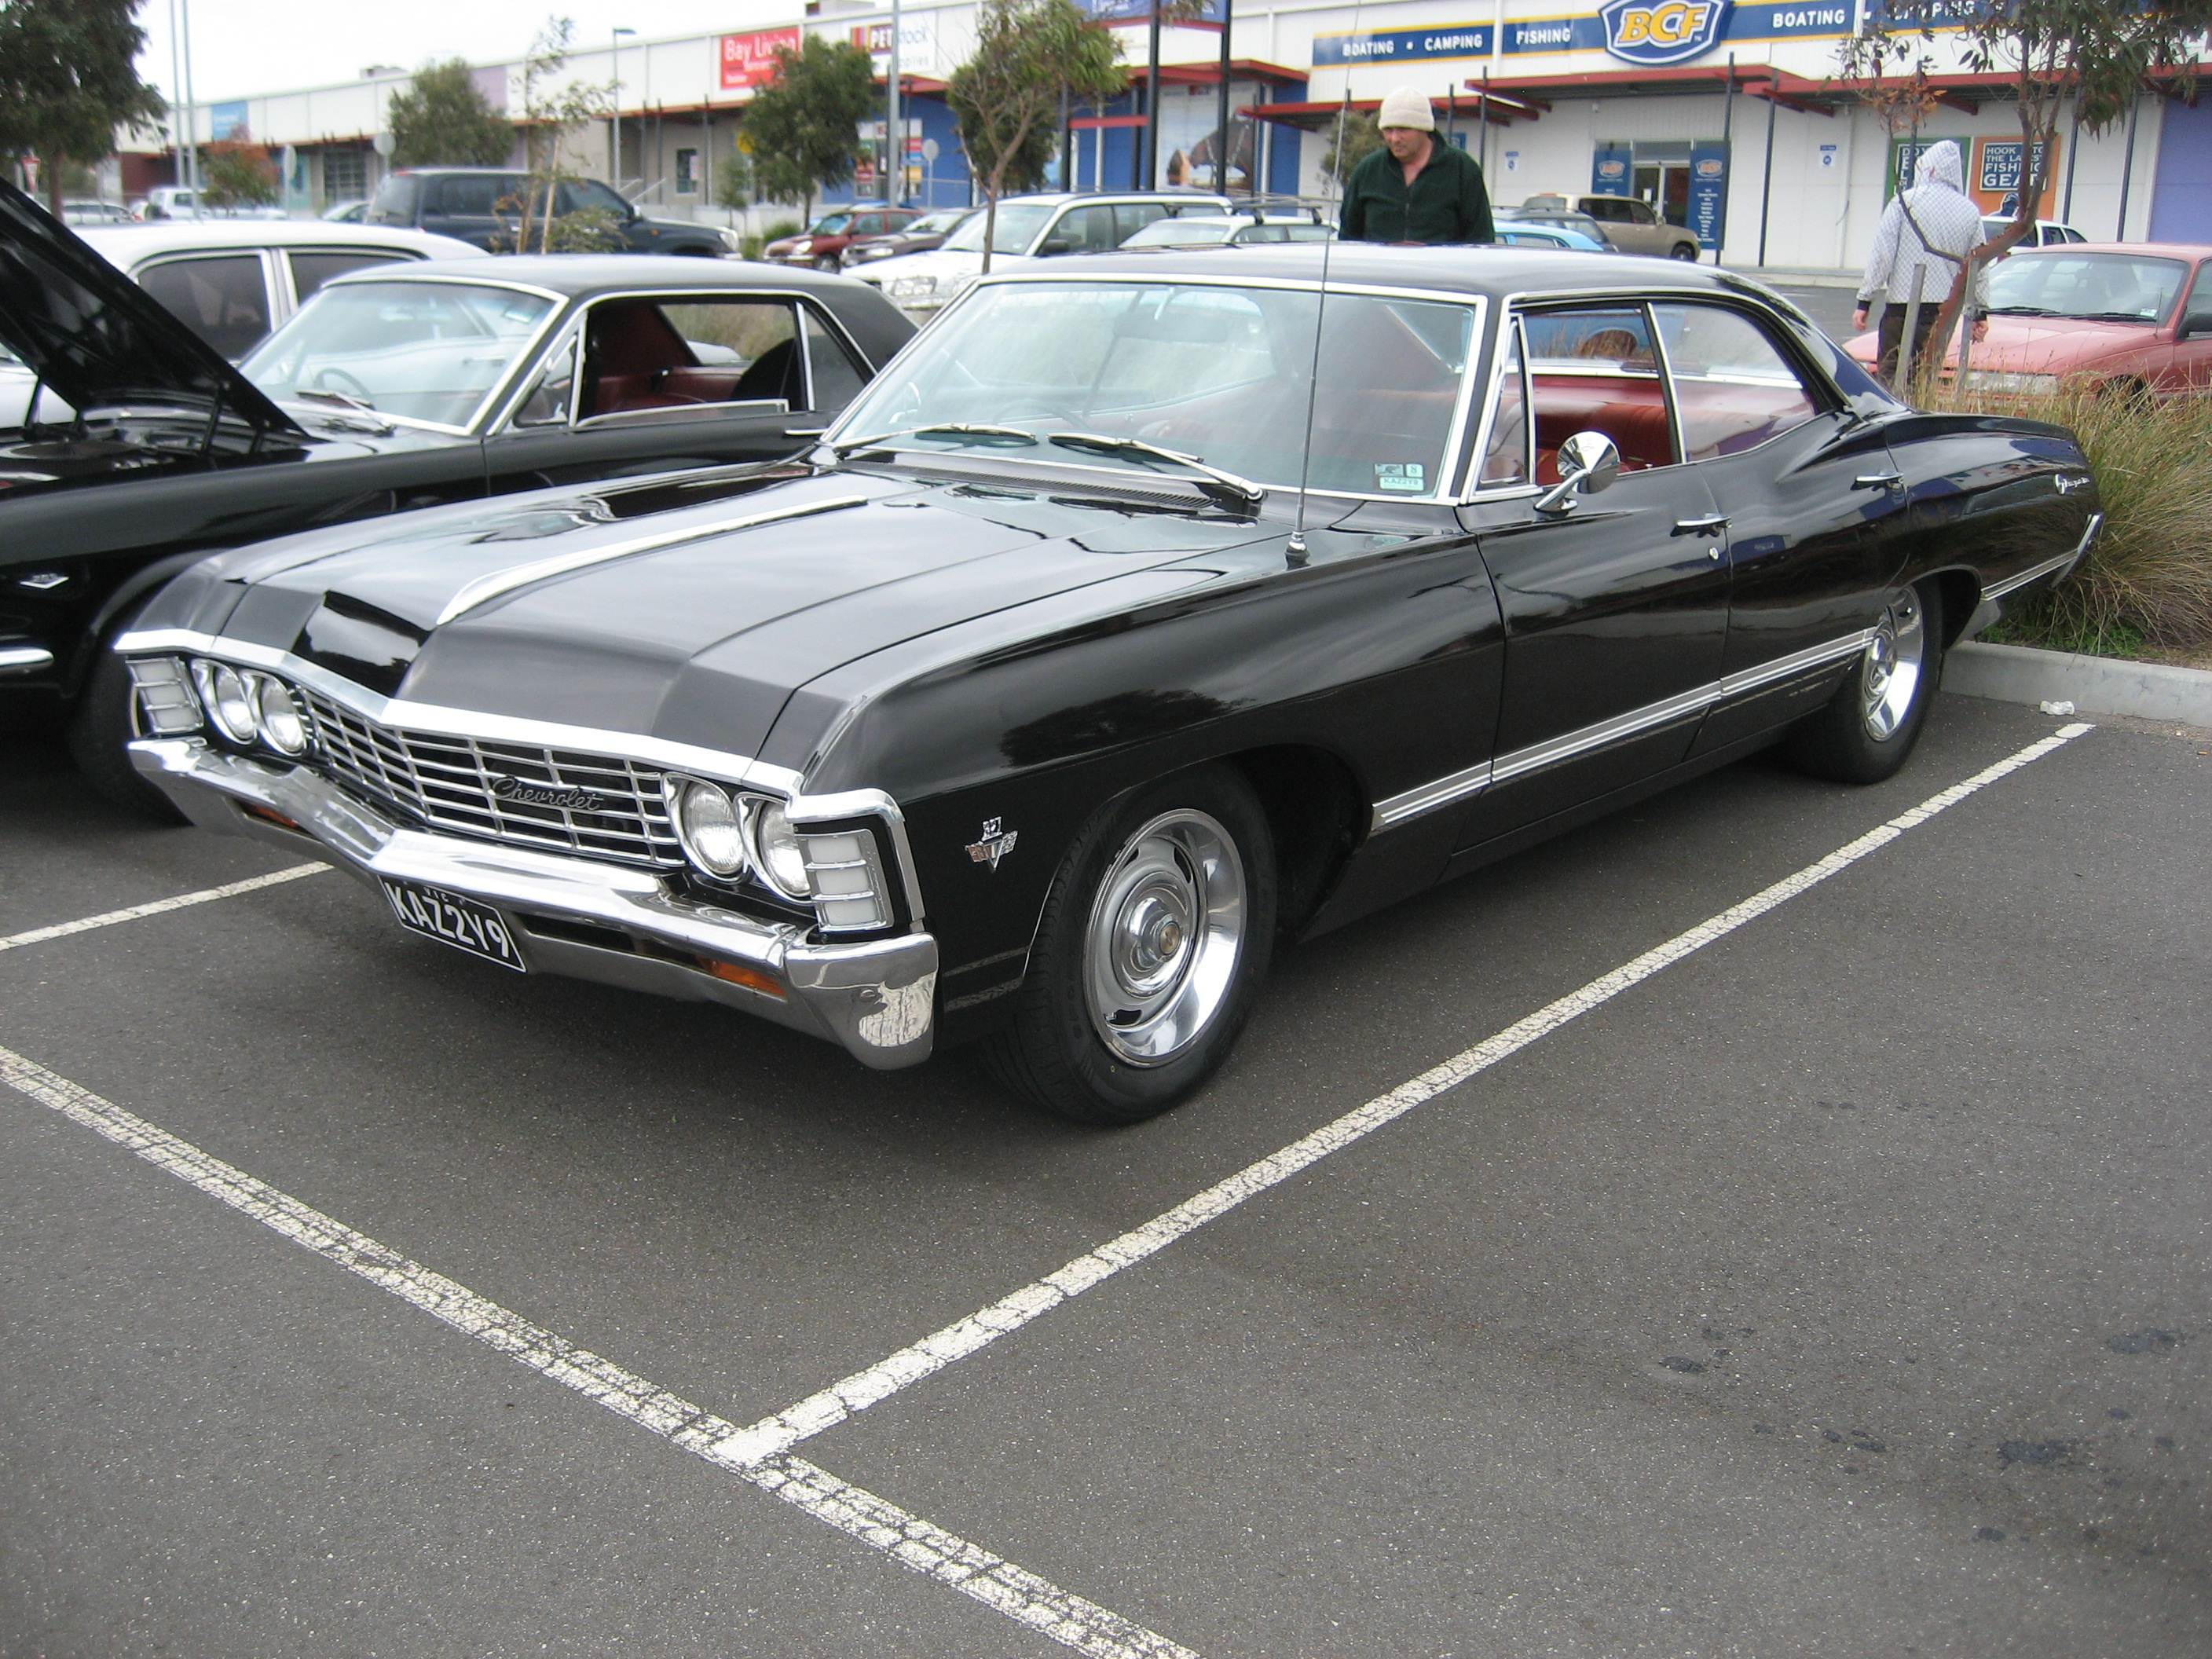 Nice wallpapers Impala 2816x2112px